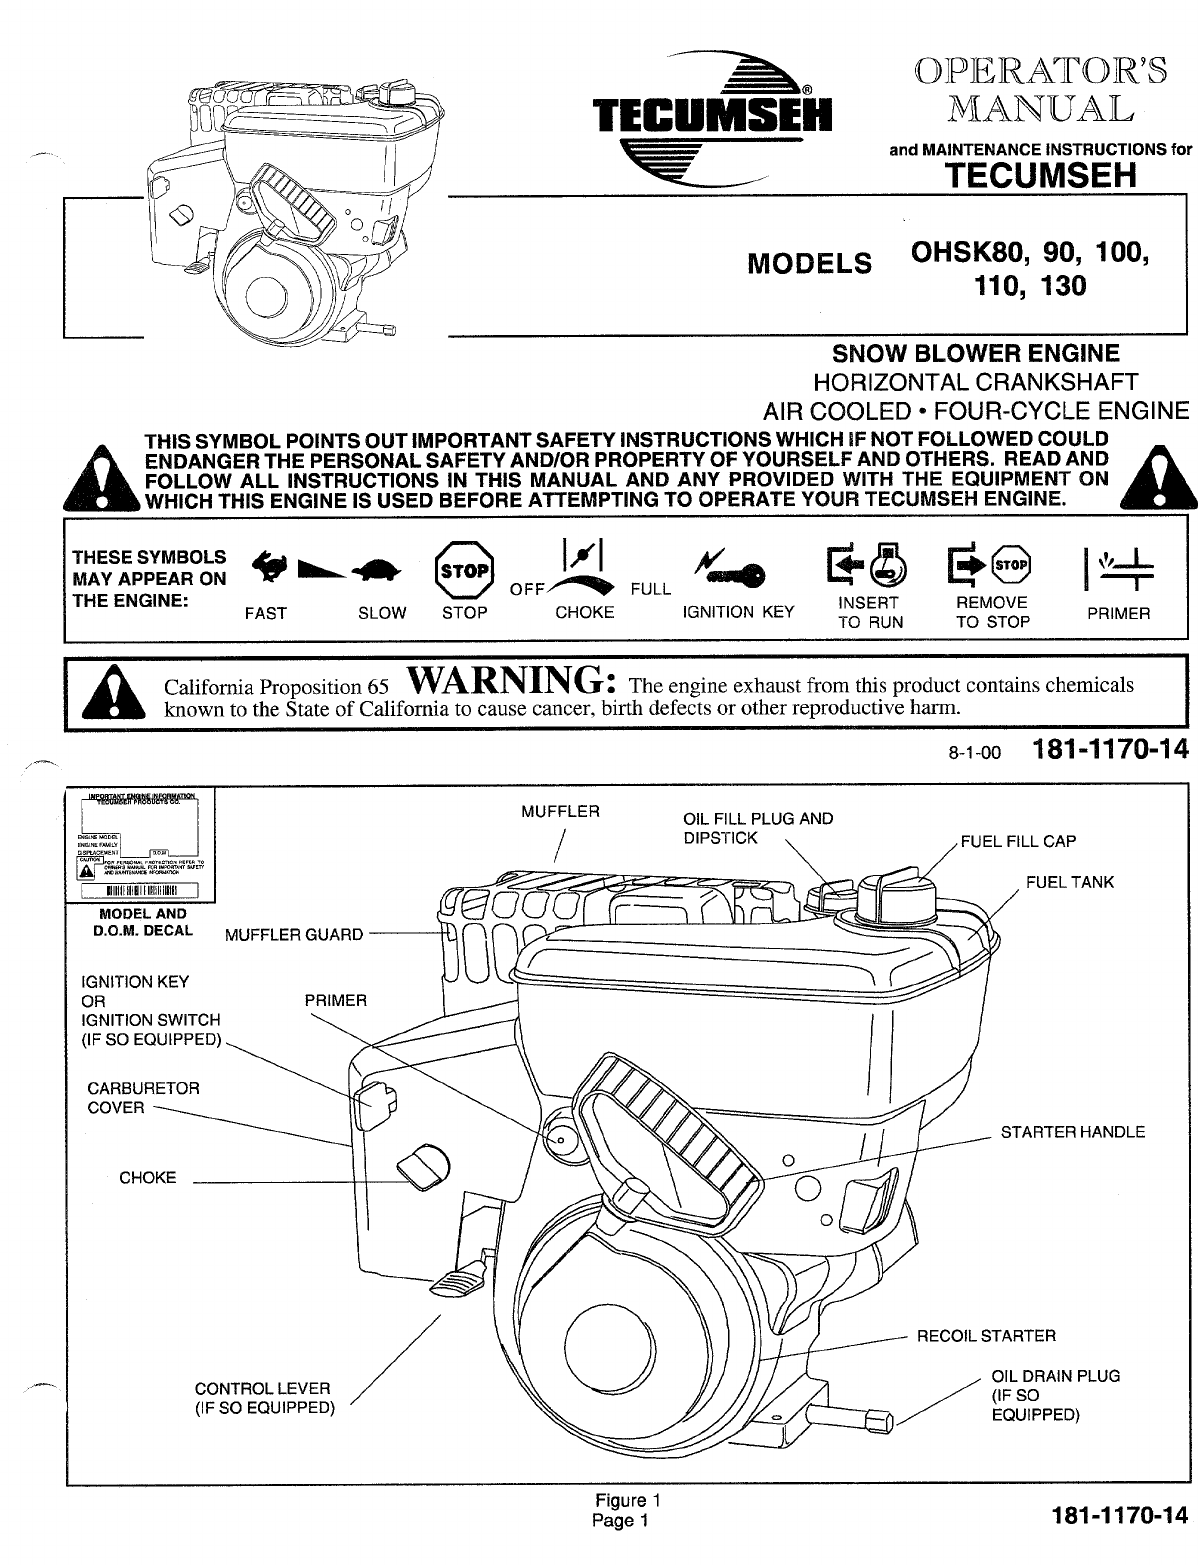 525614 Raymond Lam Kate Tsui also 181117014 together with Toro 521 Engine Diagram likewise Toro Recycler Kohler Carburetor Diagram also Toro 38180 590000159999991995 Snowthrower Parts C 121776 121777 122122. on toro s200 snowblower parts diagram